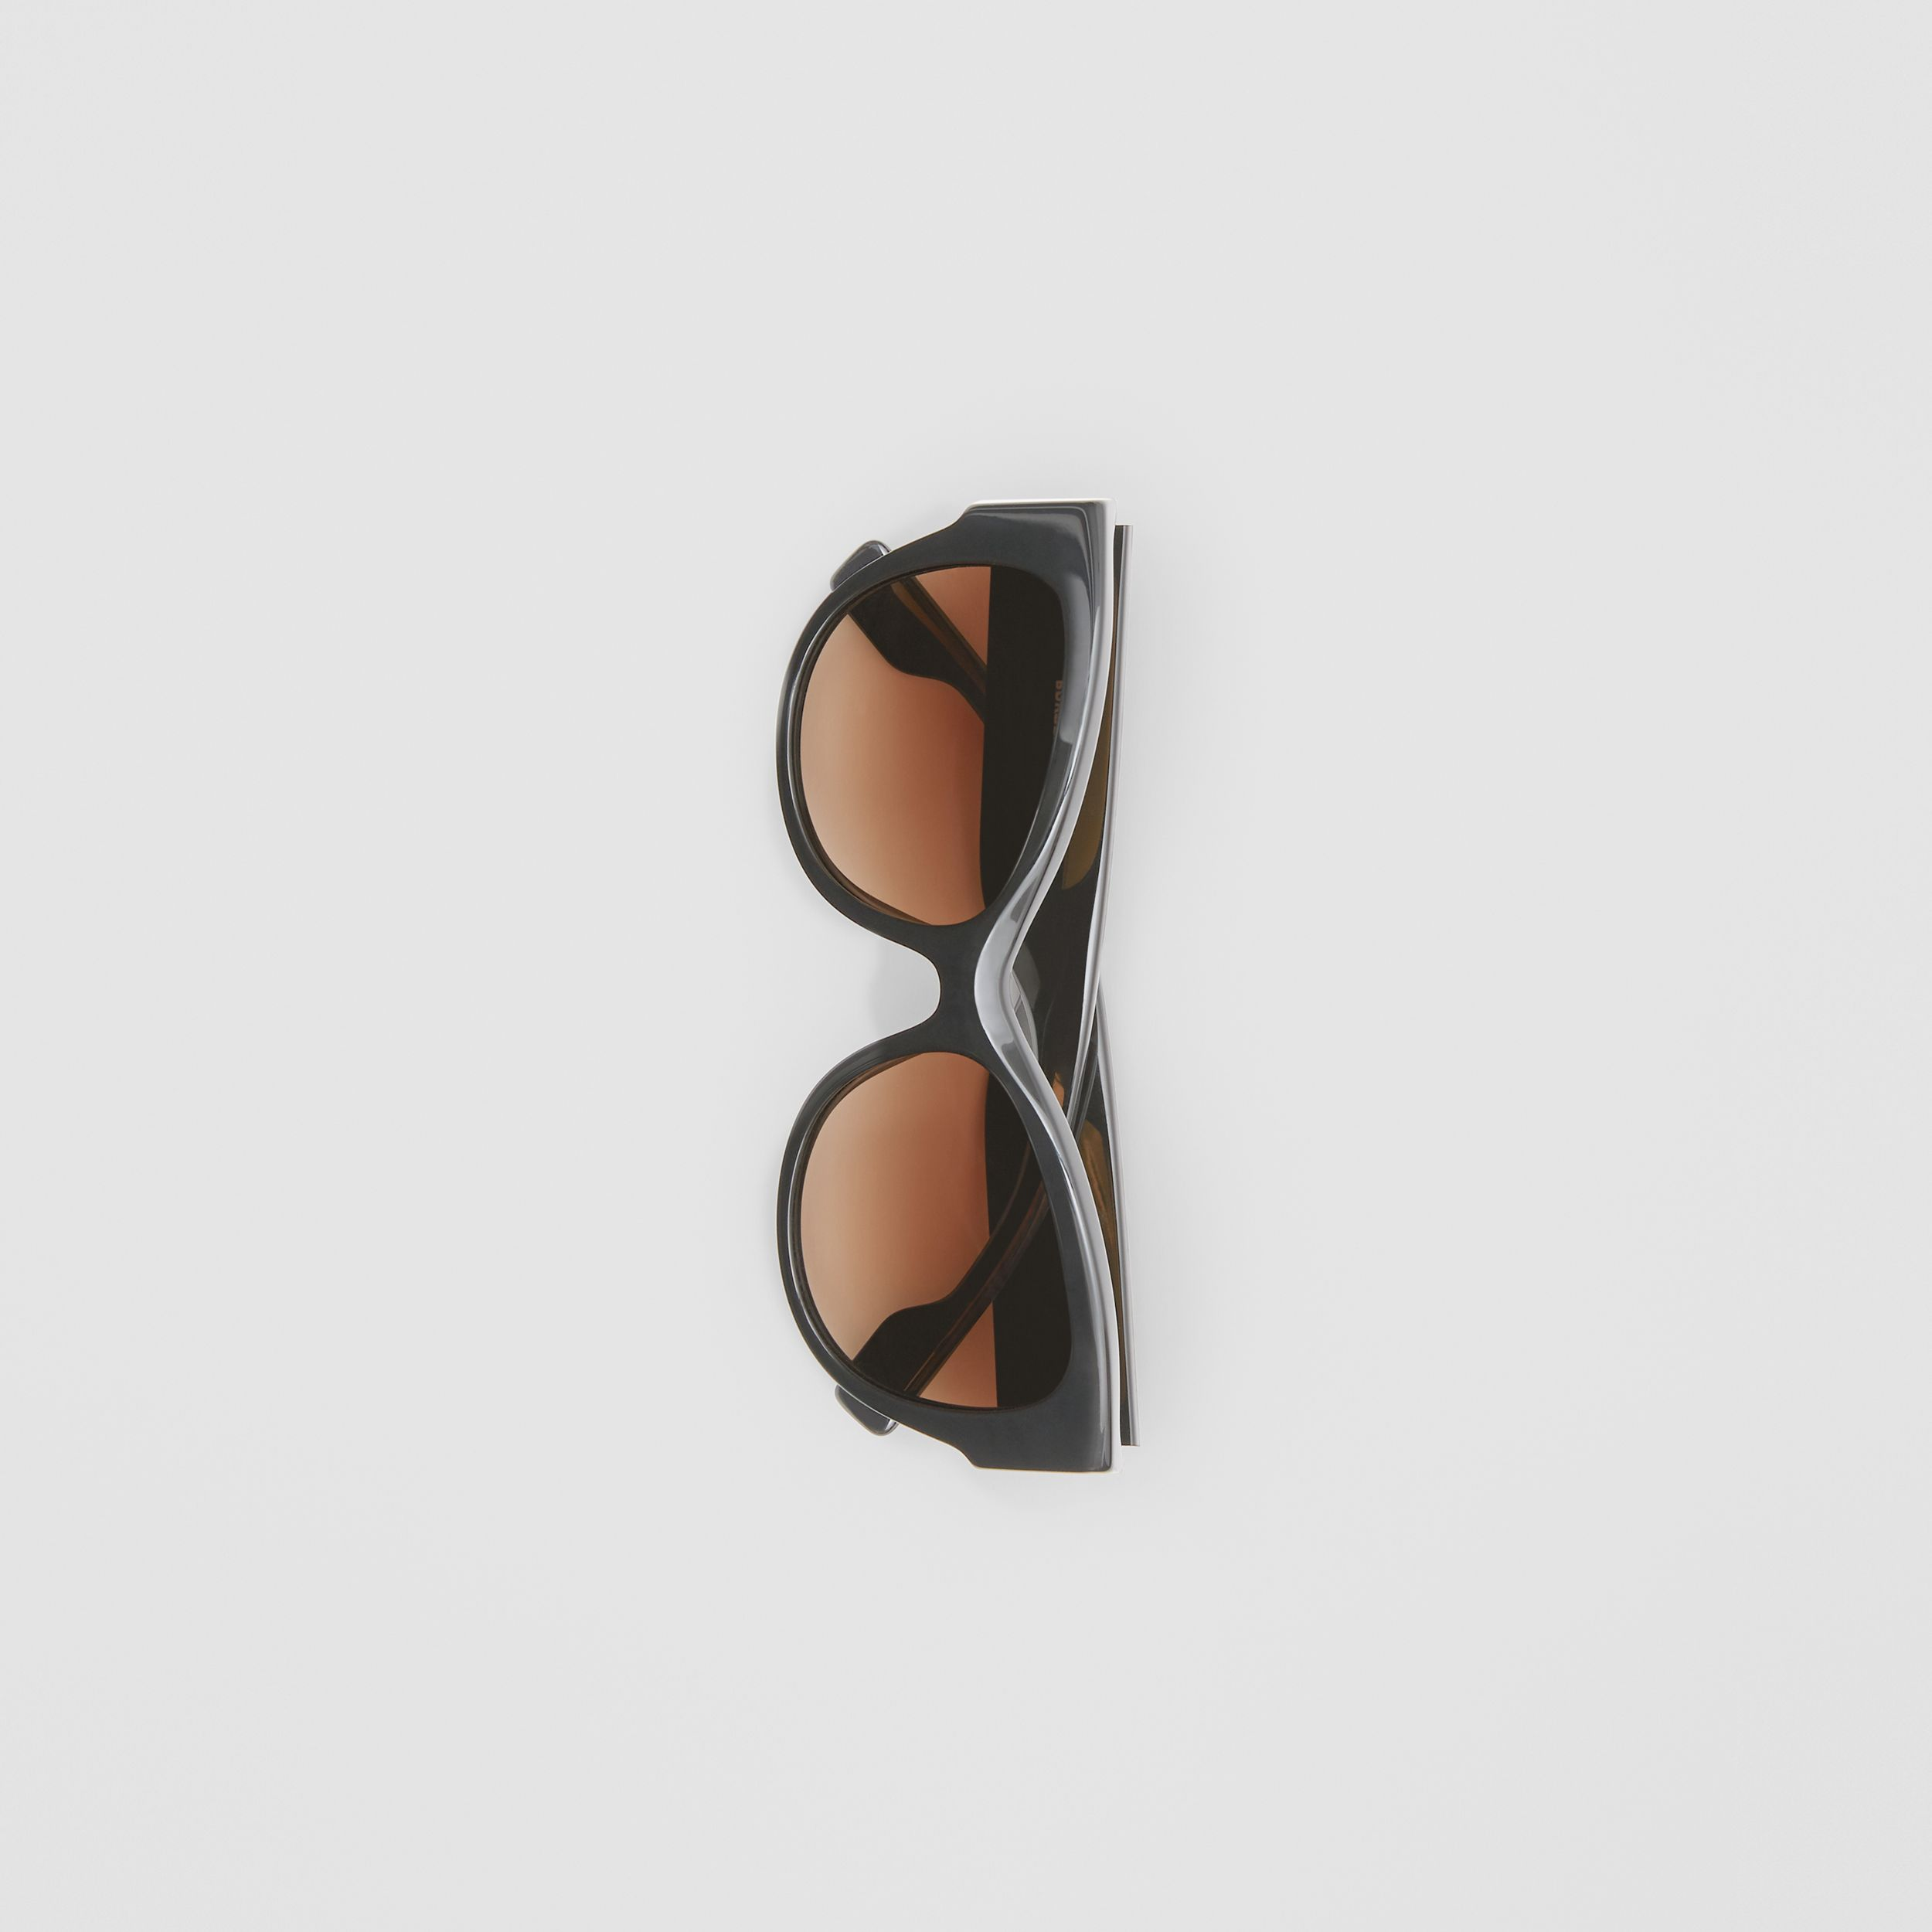 Monogram Detail Butterfly Frame Sunglasses in Black/vermillion - Women | Burberry Canada - 4